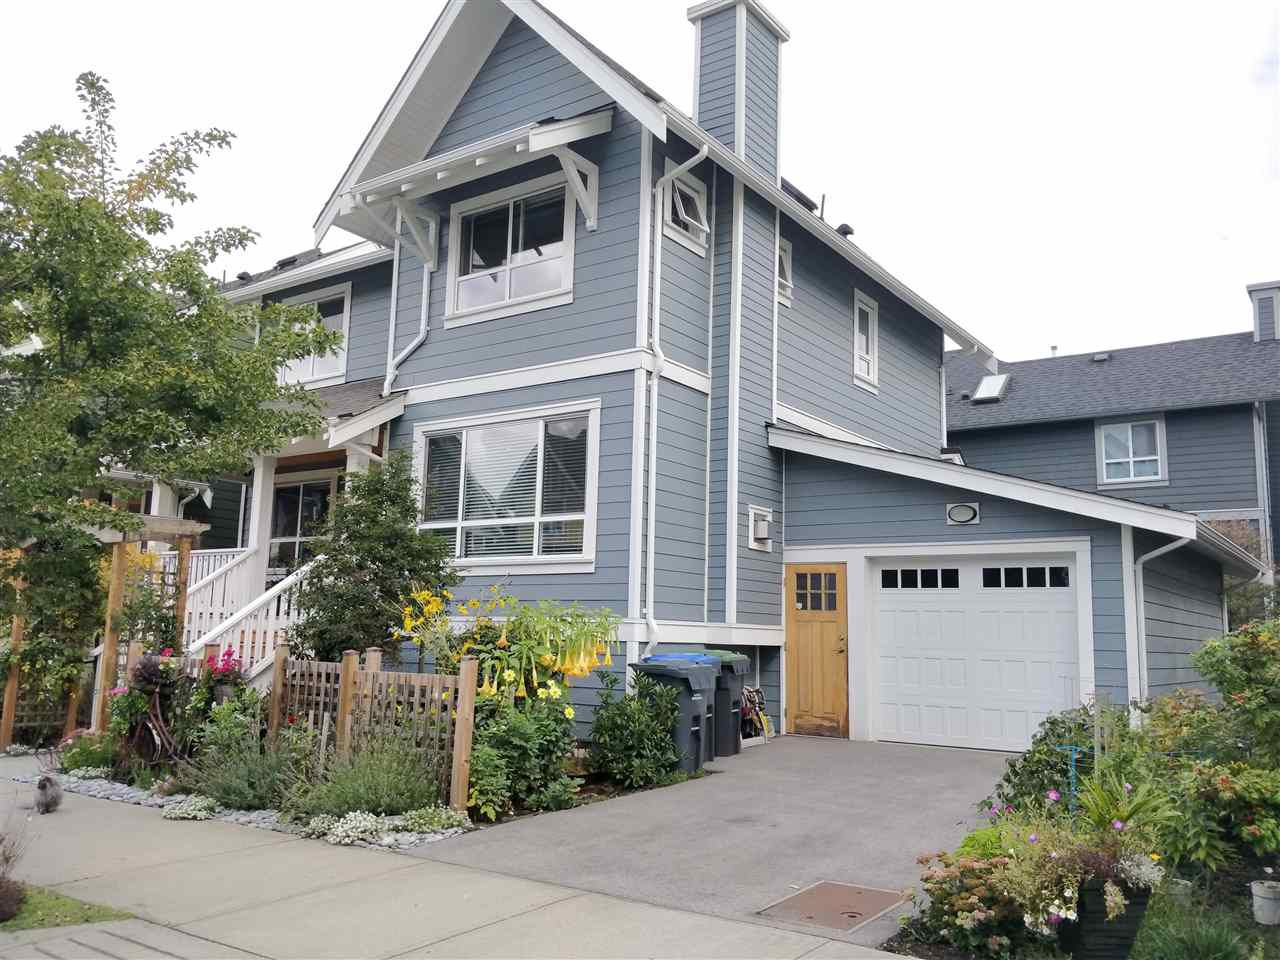 """Main Photo: 285 CAMATA Street in New Westminster: Queensborough House for sale in """"Canoe"""" : MLS®# R2306271"""